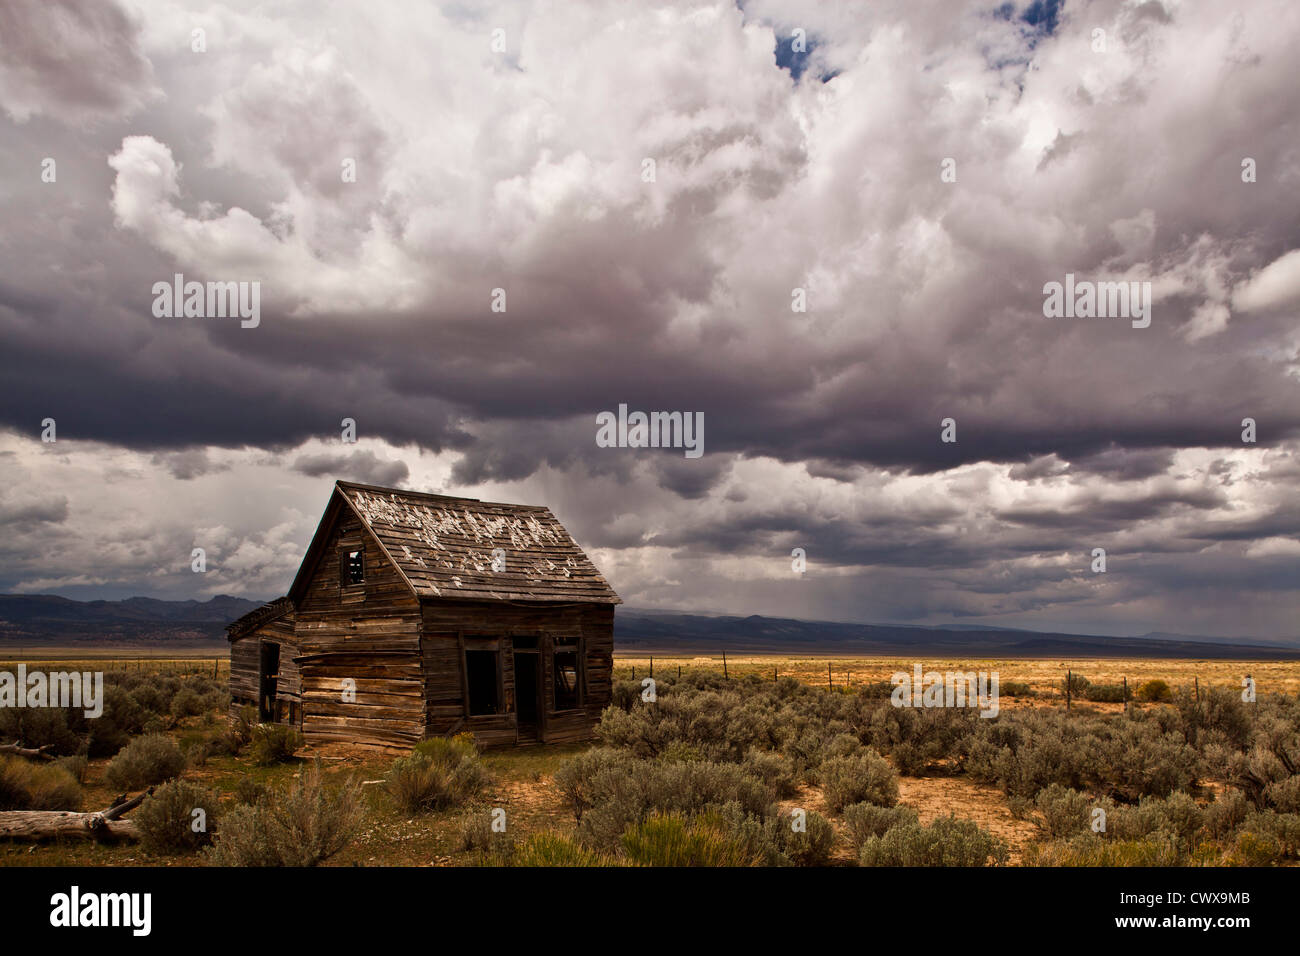 Widtsoe Ghost Town, Utah, United States of America - Stock Image